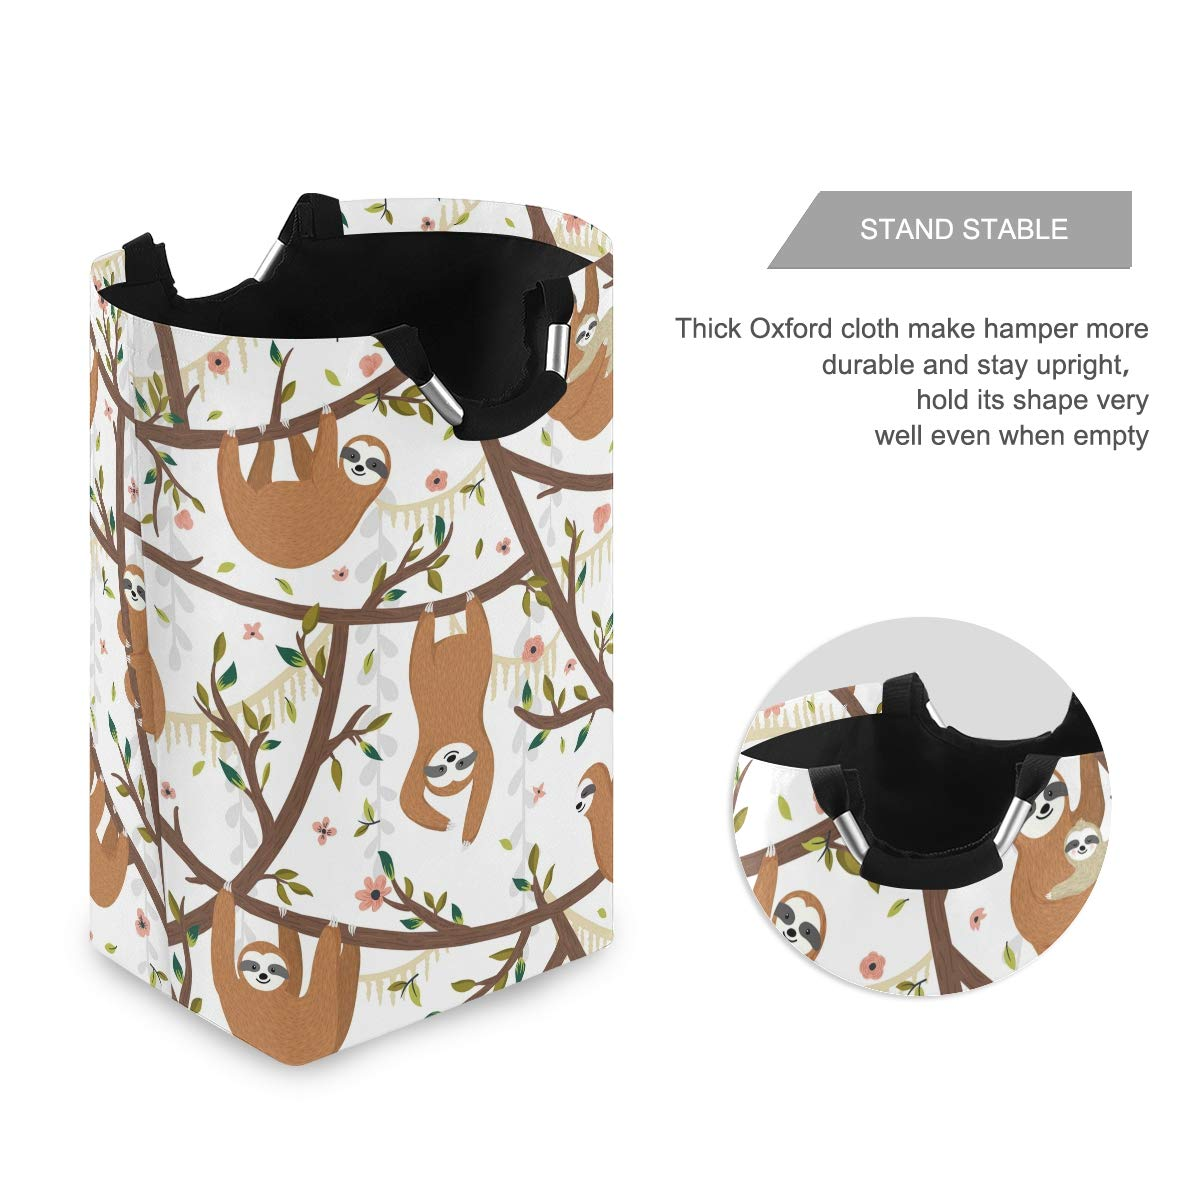 Unimagic Collapsible Laundry Basket Cartoon Animal Funny Sloth Laundry Hamper Large Cloth Hamper Laundry Organizer Holder with Handle